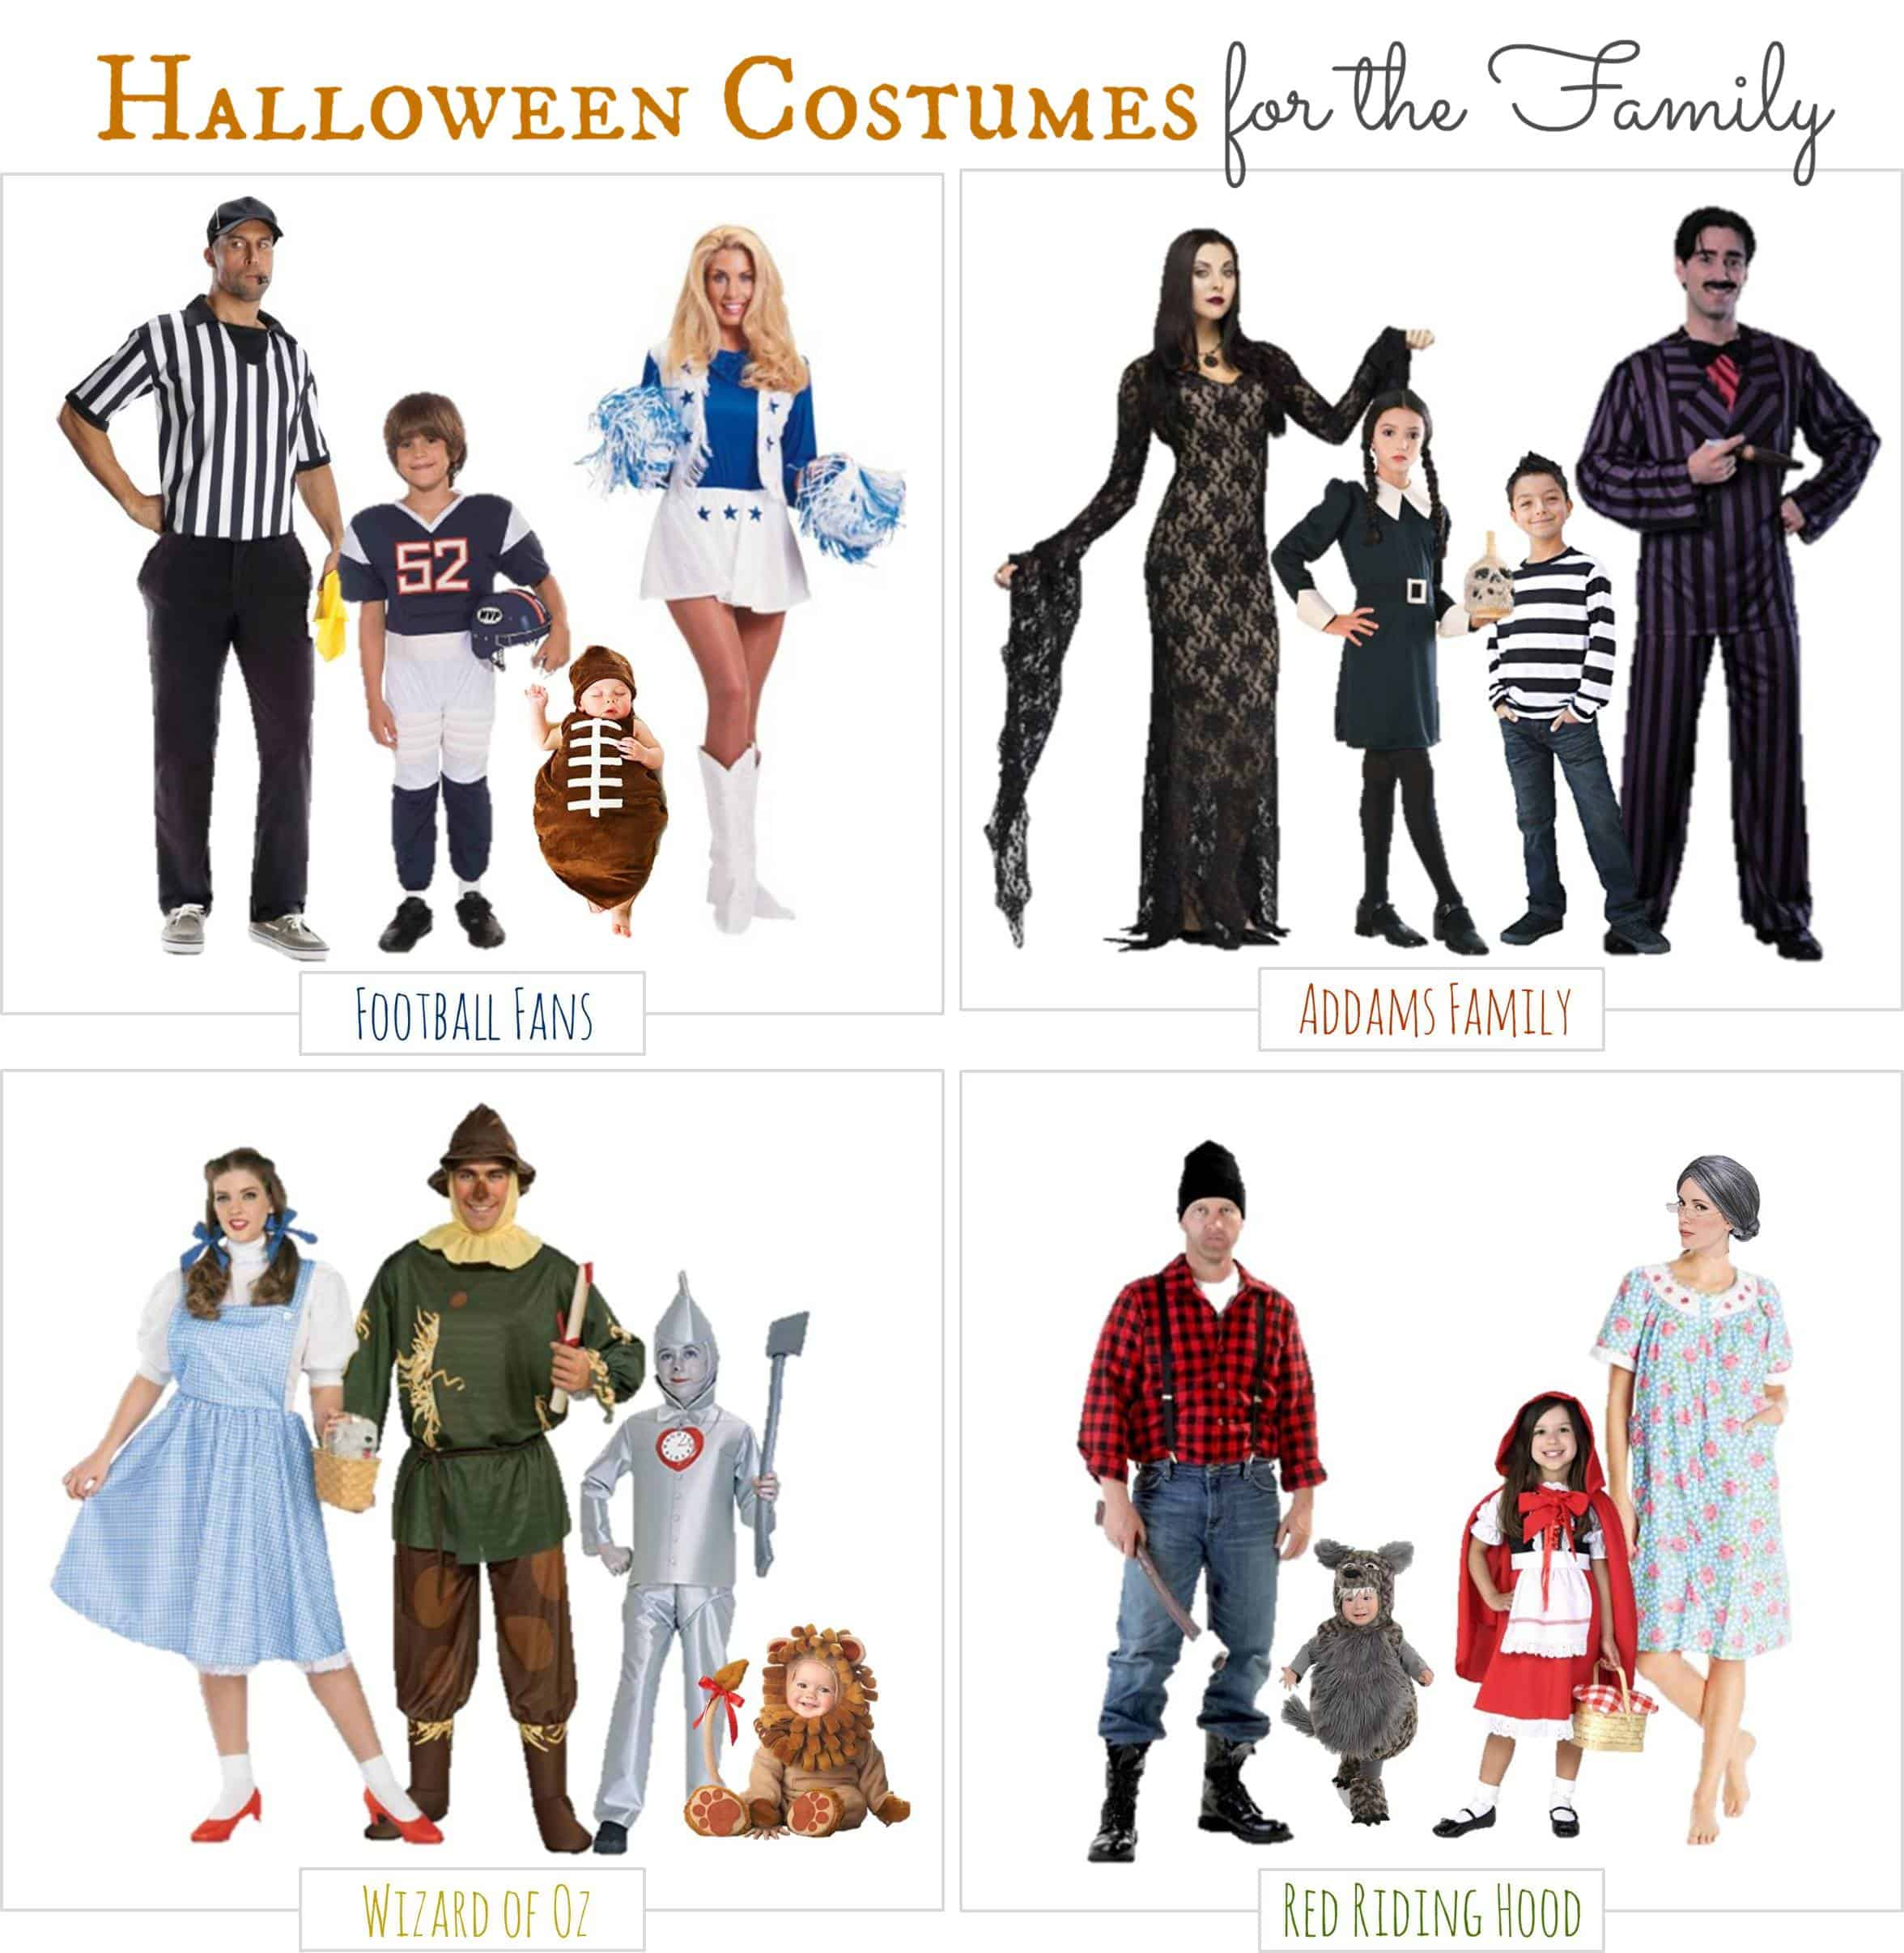 A collection of Halloween costumes for the entire family.